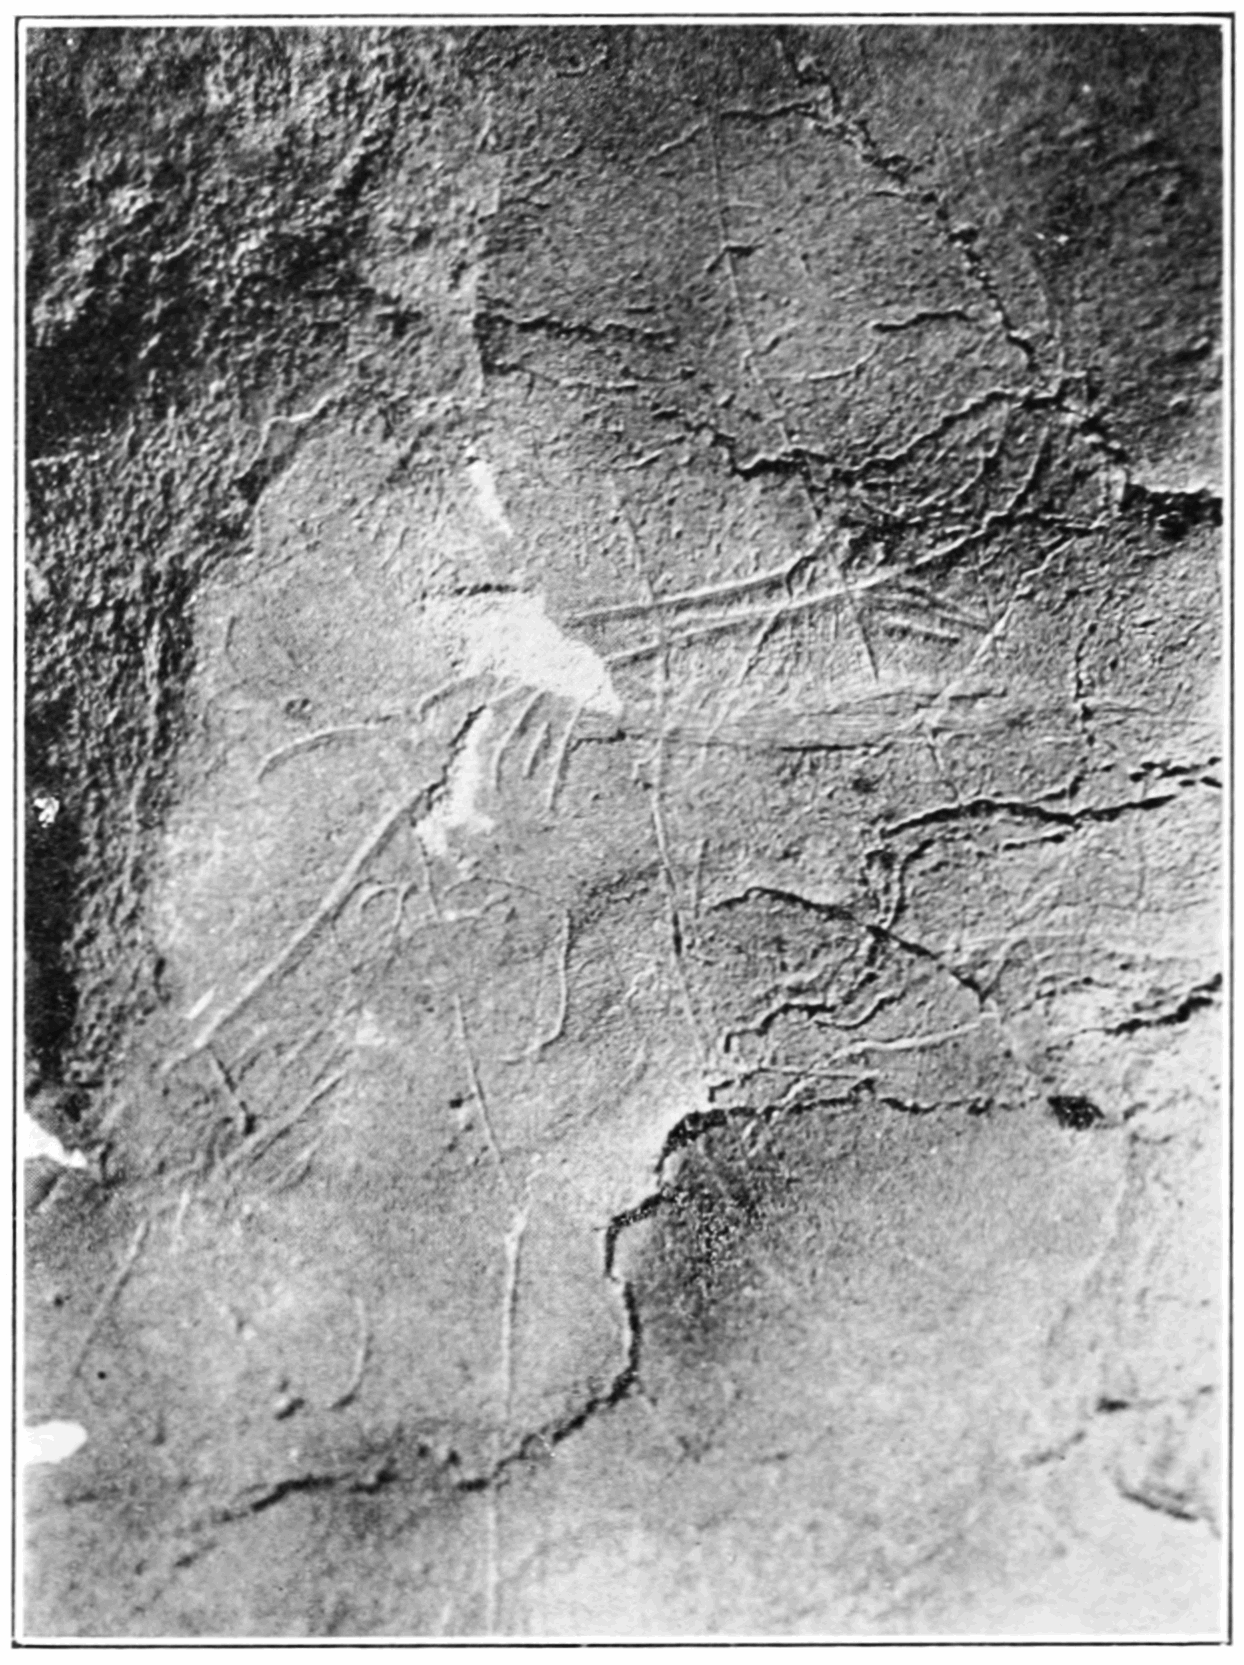 PSM V83 D024 Head of reindeer engraved on cavern wall at tuc daudoubert.png